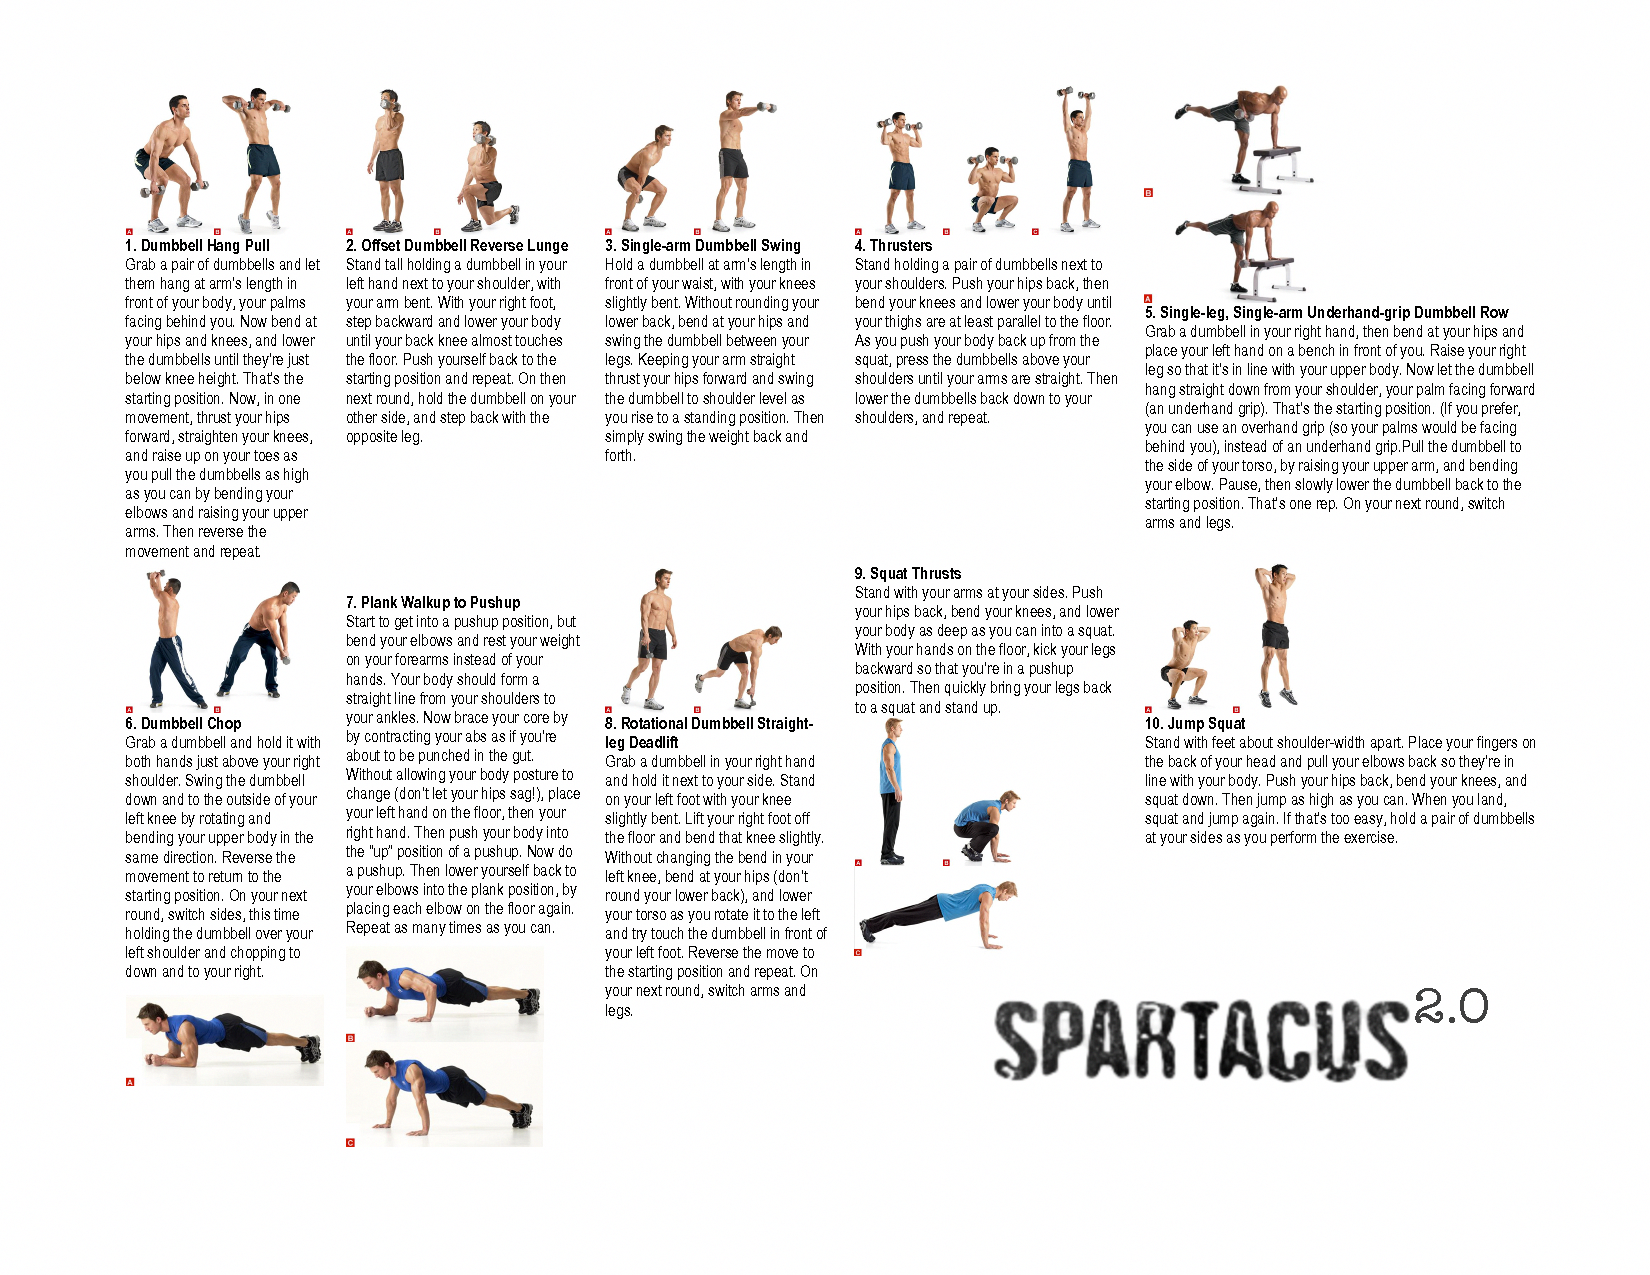 a8c8e421fd Spartacus Workout 2.0. I really like this workout  surfingworkout ...